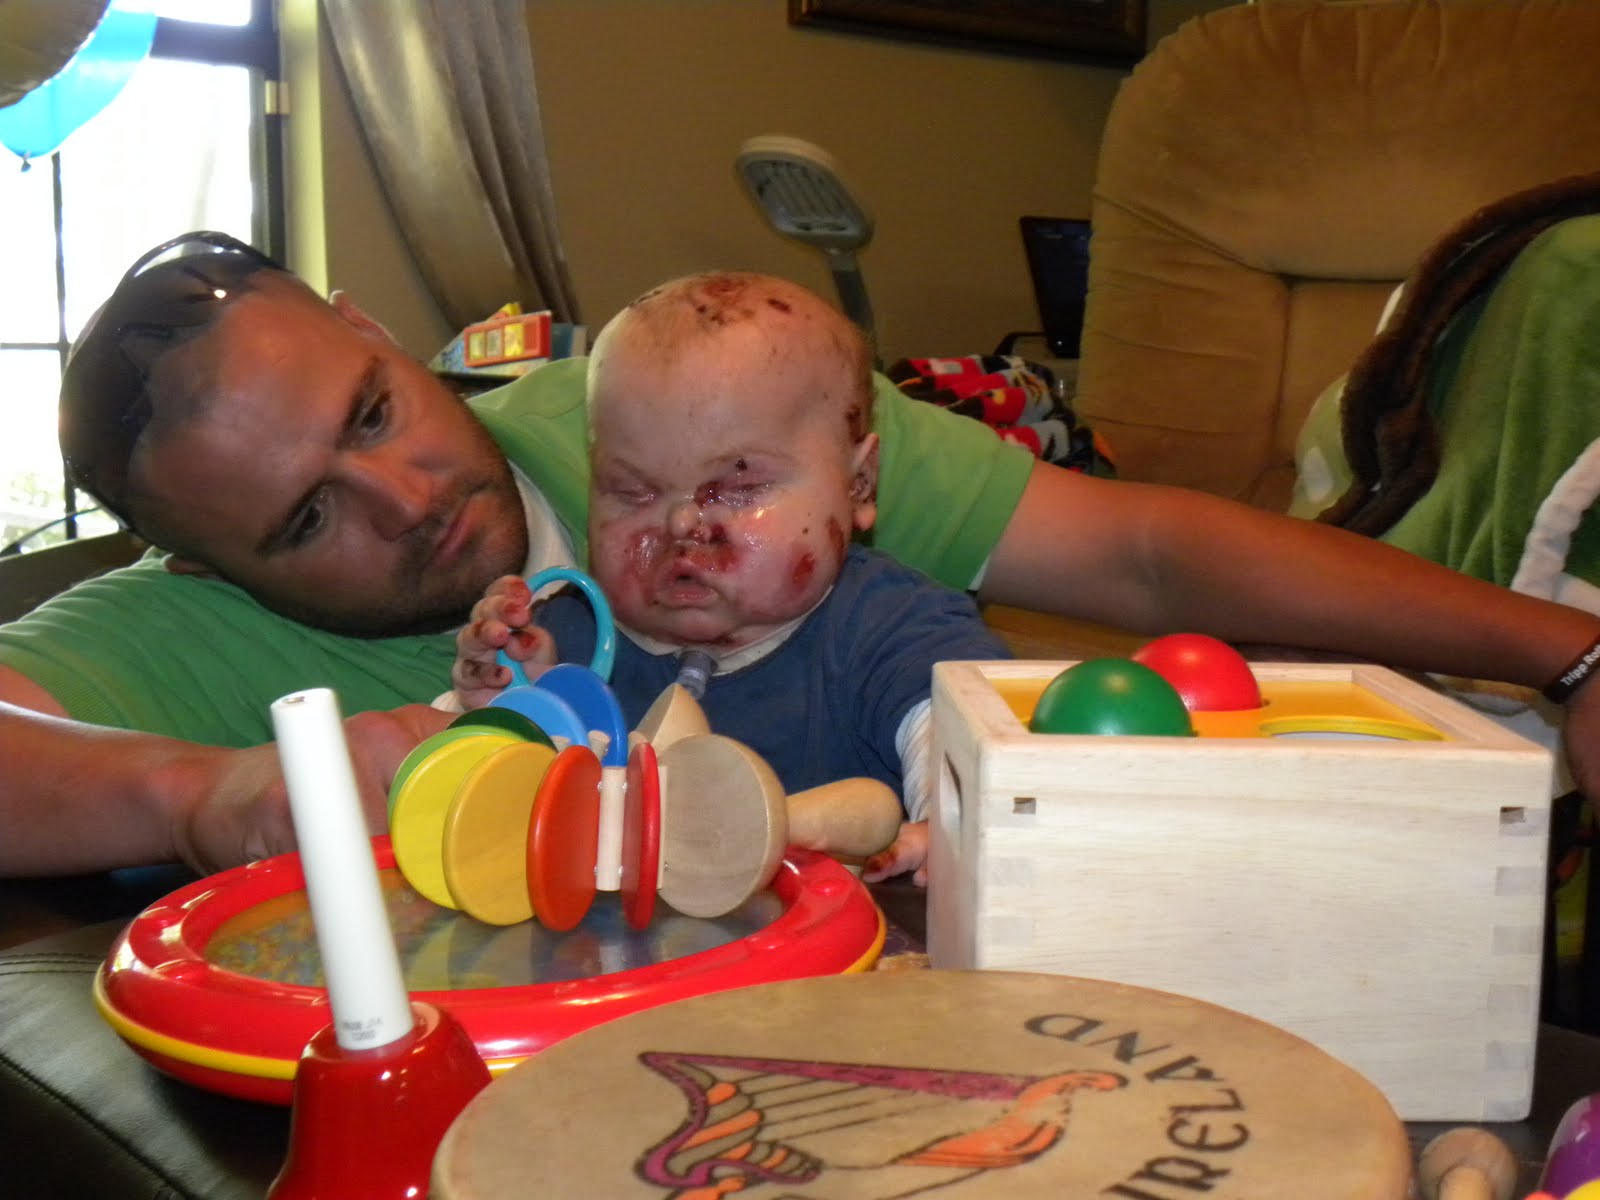 EBing a Mommy: May 2011